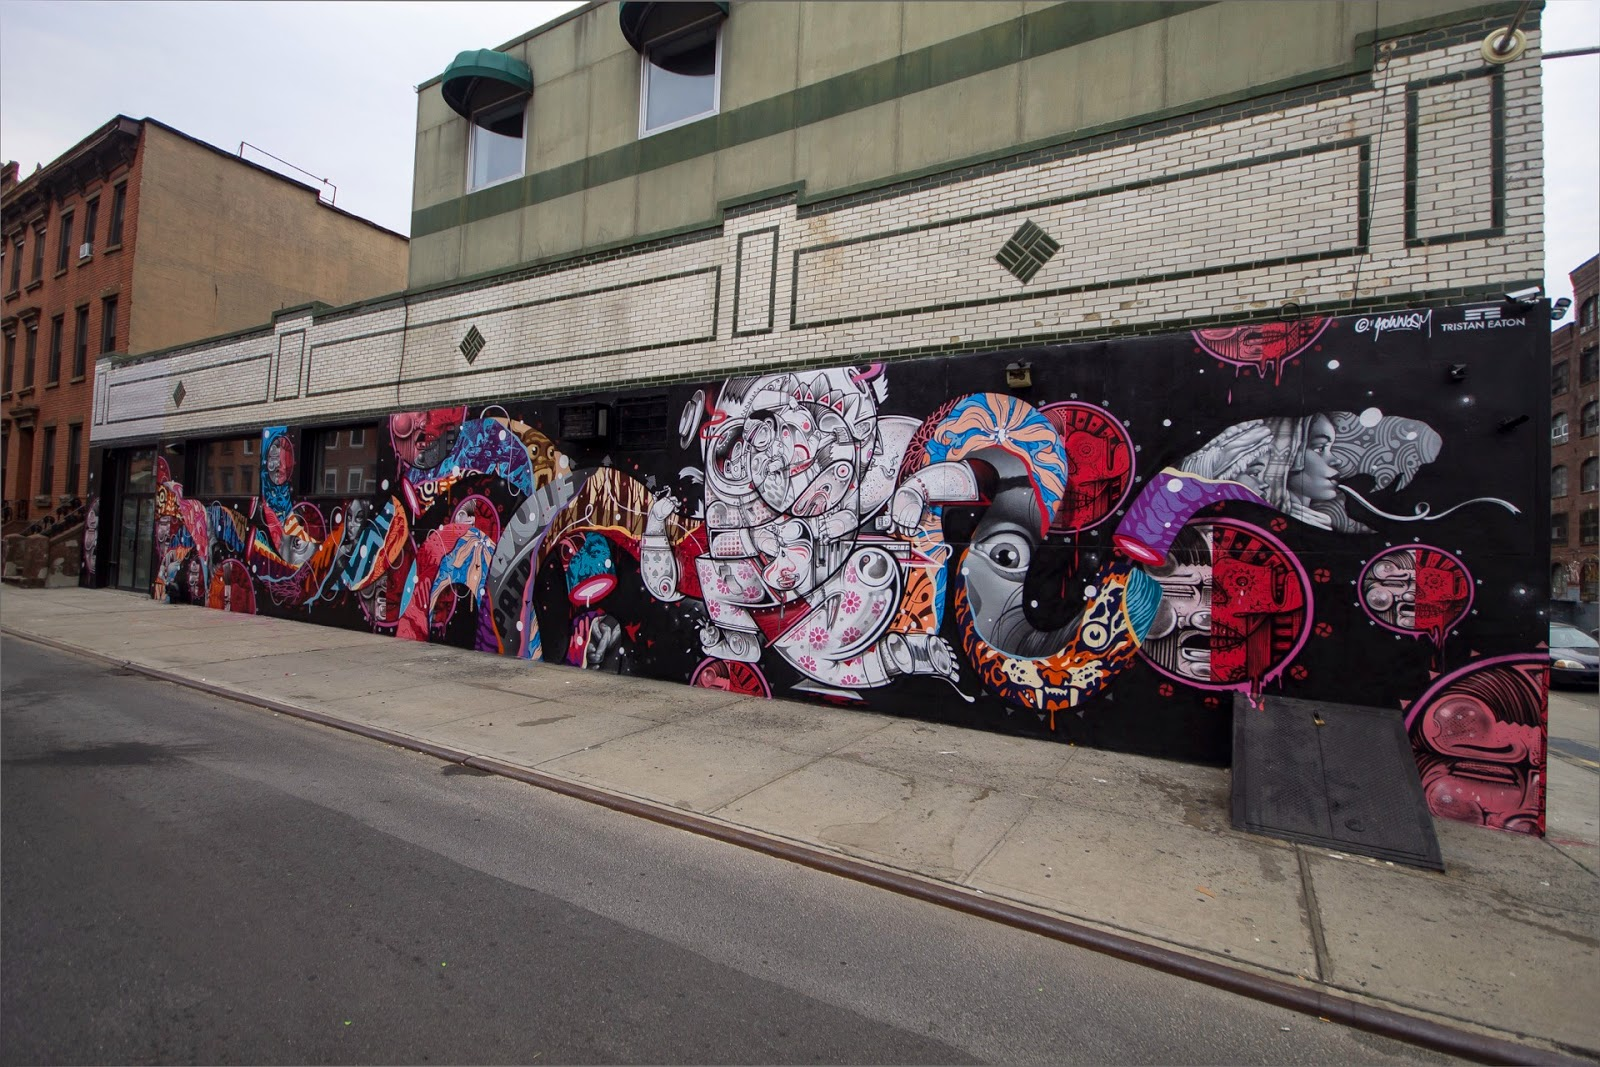 After working on a solo piece in Soho, New York, Tristan Eaton joined forces with German duo How Nosm on a new collaboration.